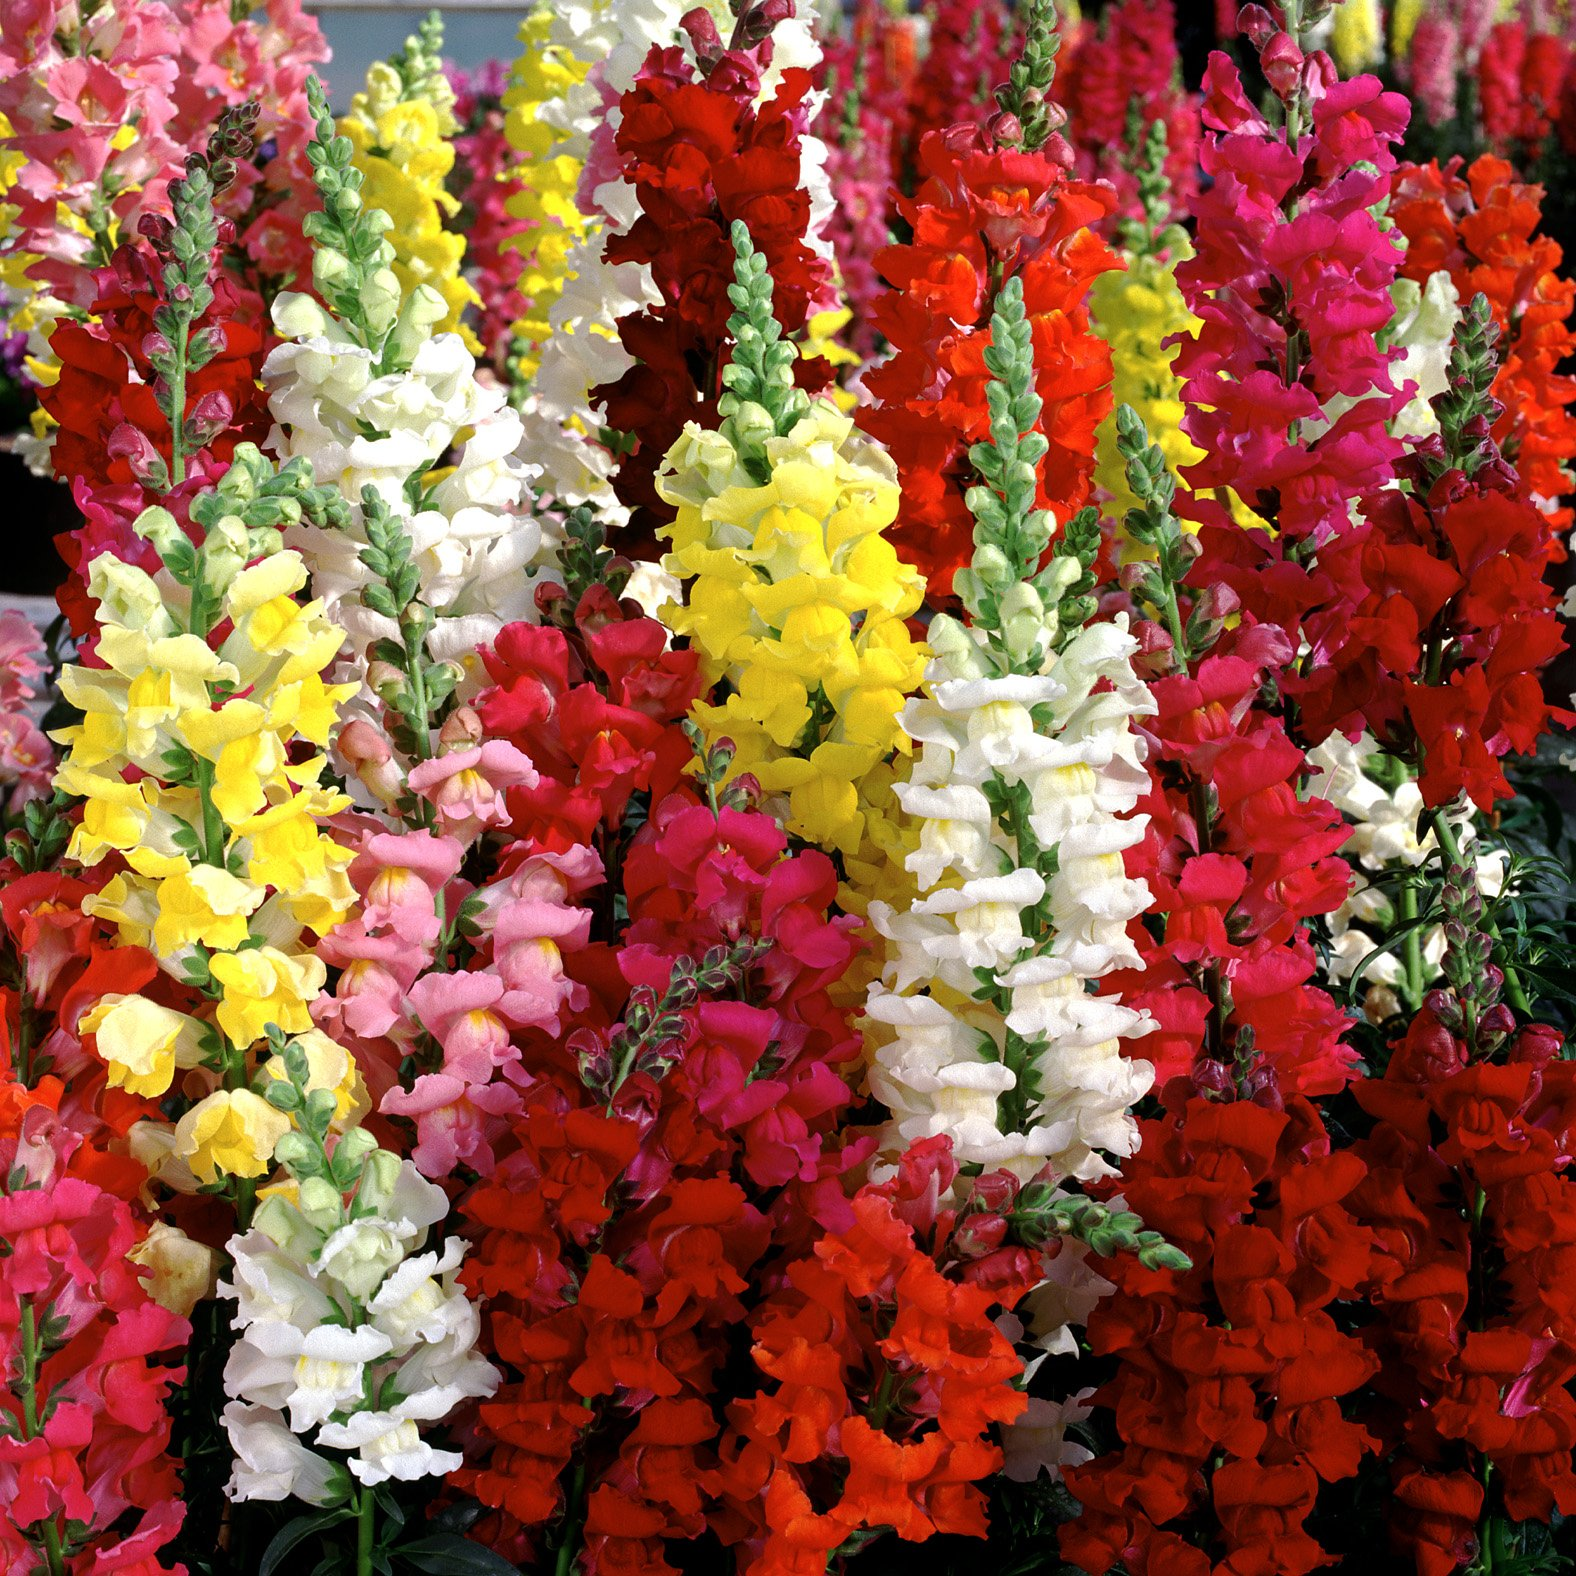 500 Seeds, Mixed Snapdragon Seeds, Northern Lights, Toadflax, Bulk Seeds, Heirloom,